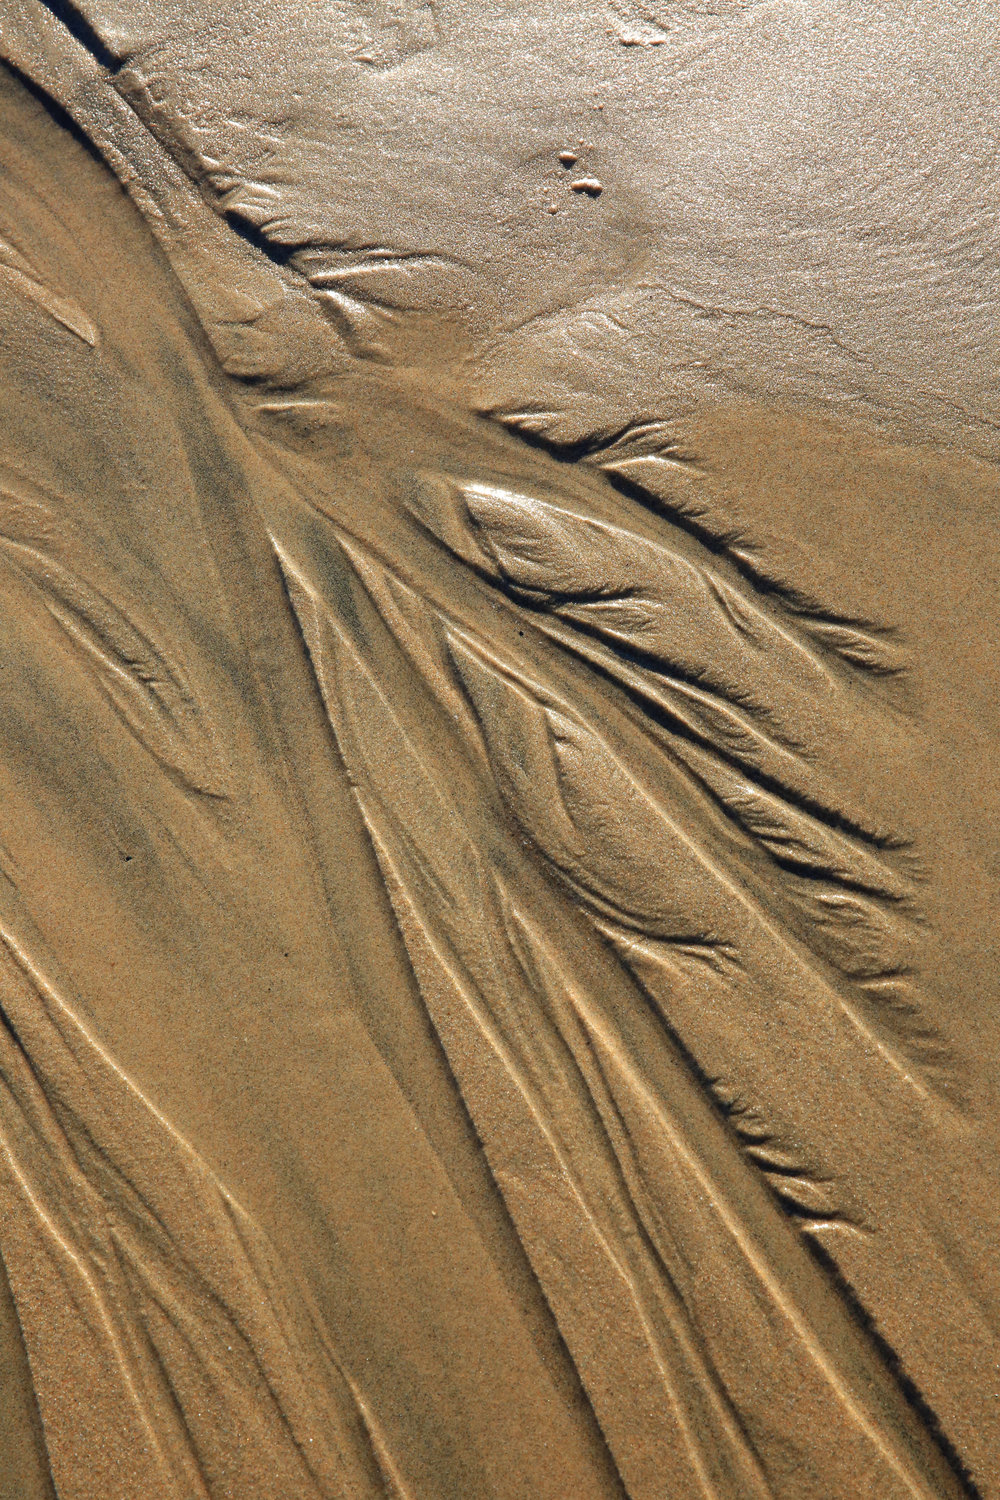 The inflow and outflow of tides create striking compositions in the sand.